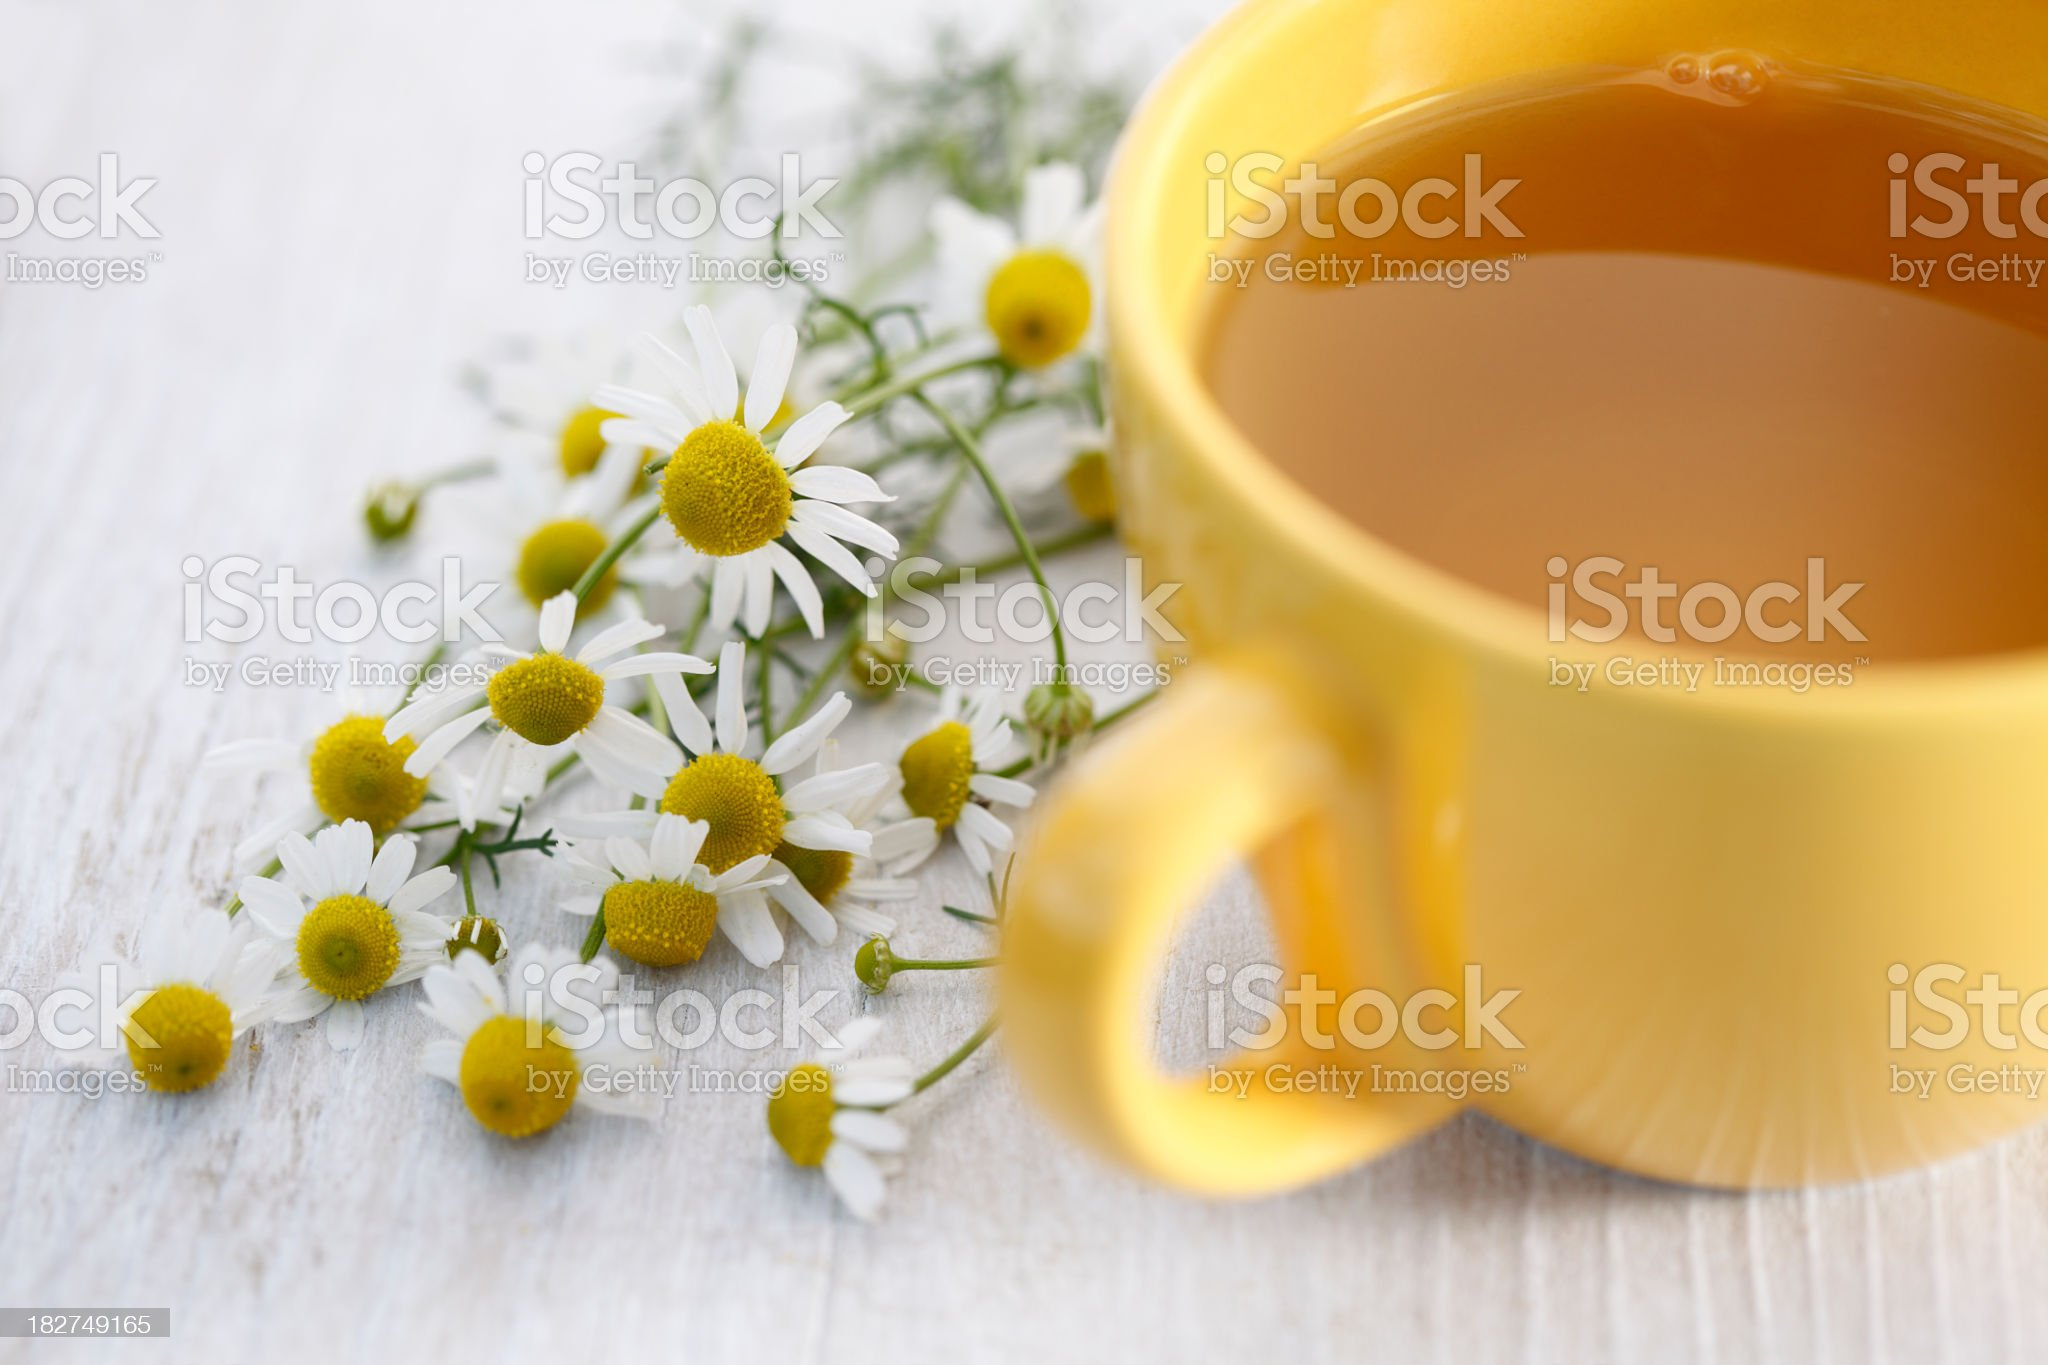 Chamomile tea in a yellow cup on white table with daisies royalty-free stock photo